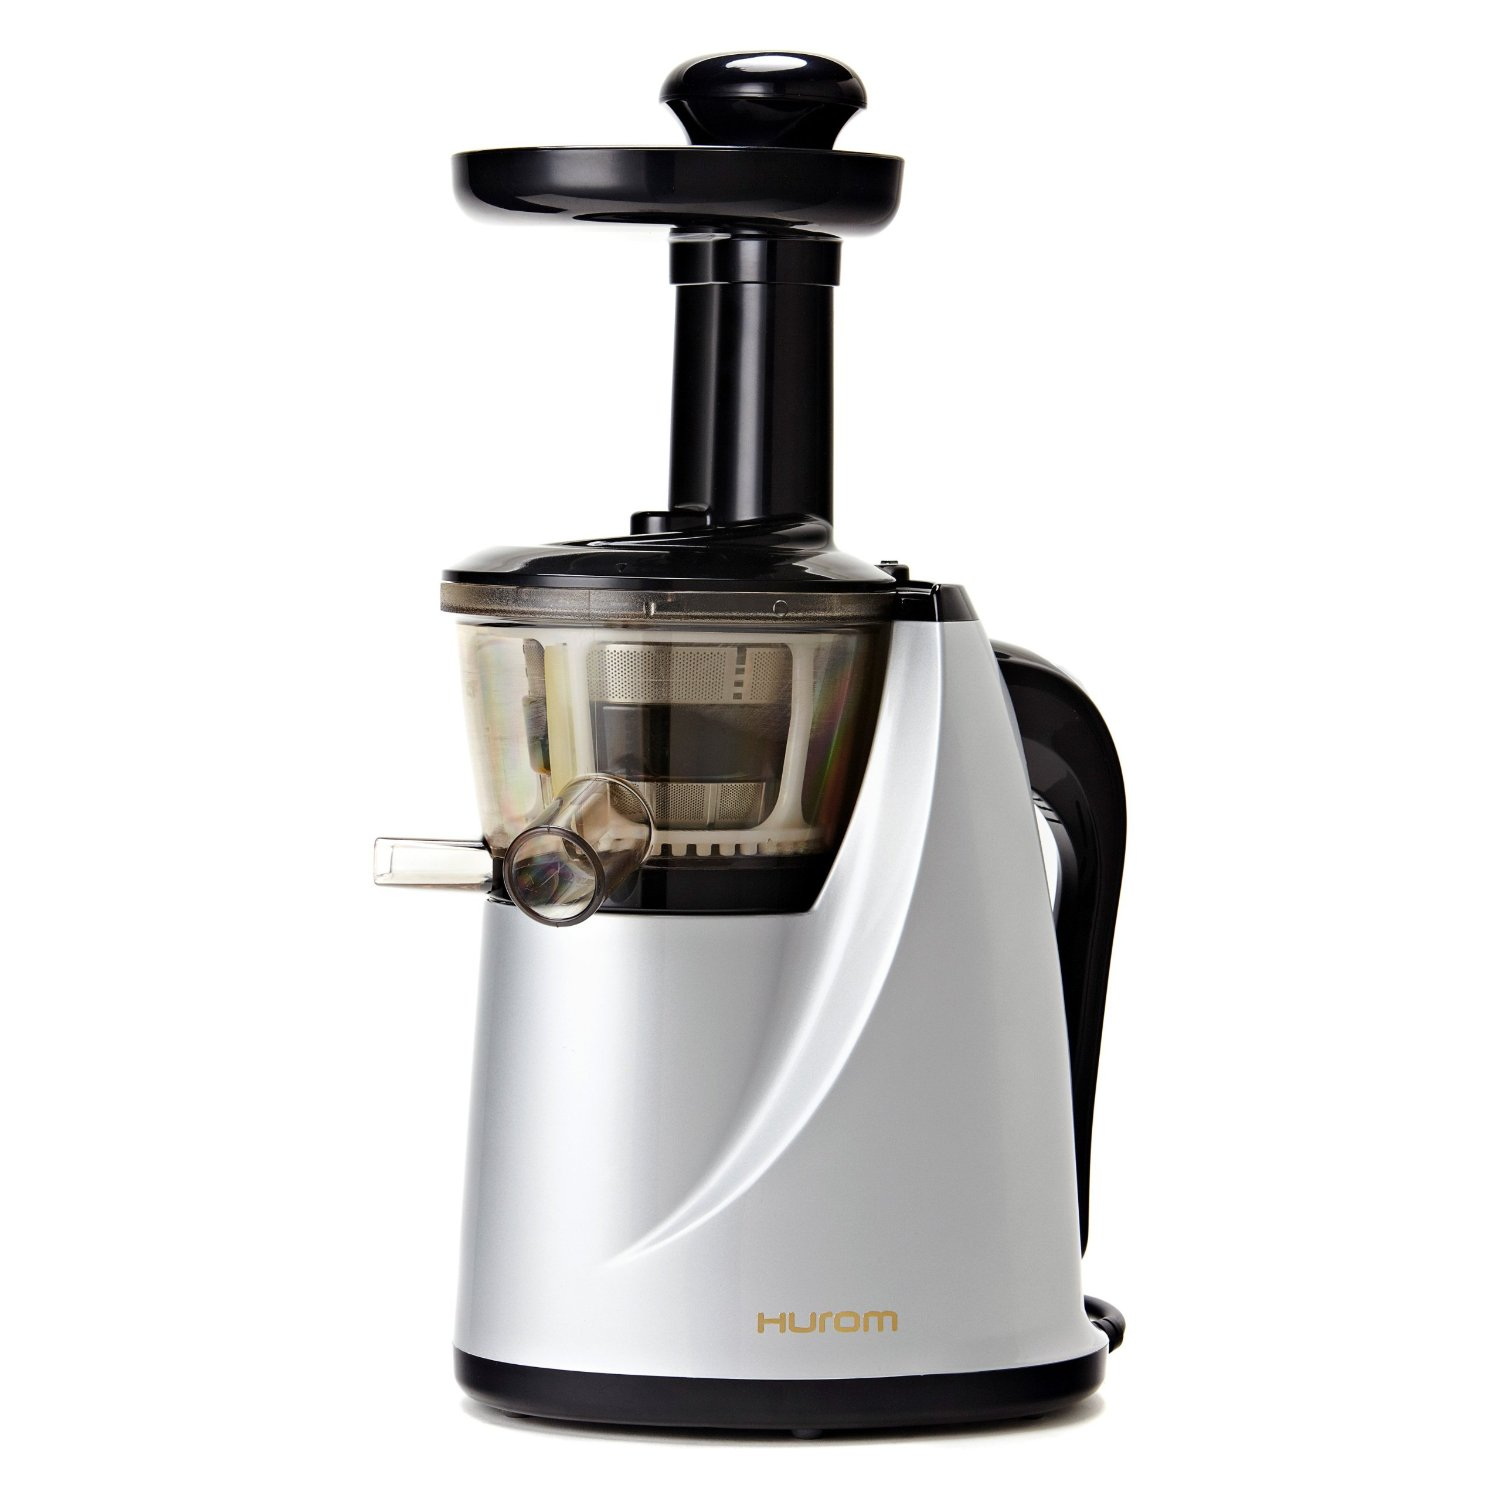 Slow Juicer Mondial : Hurom HU-100 Masticating Slow Juicer Review - Best Cold Press Juicers